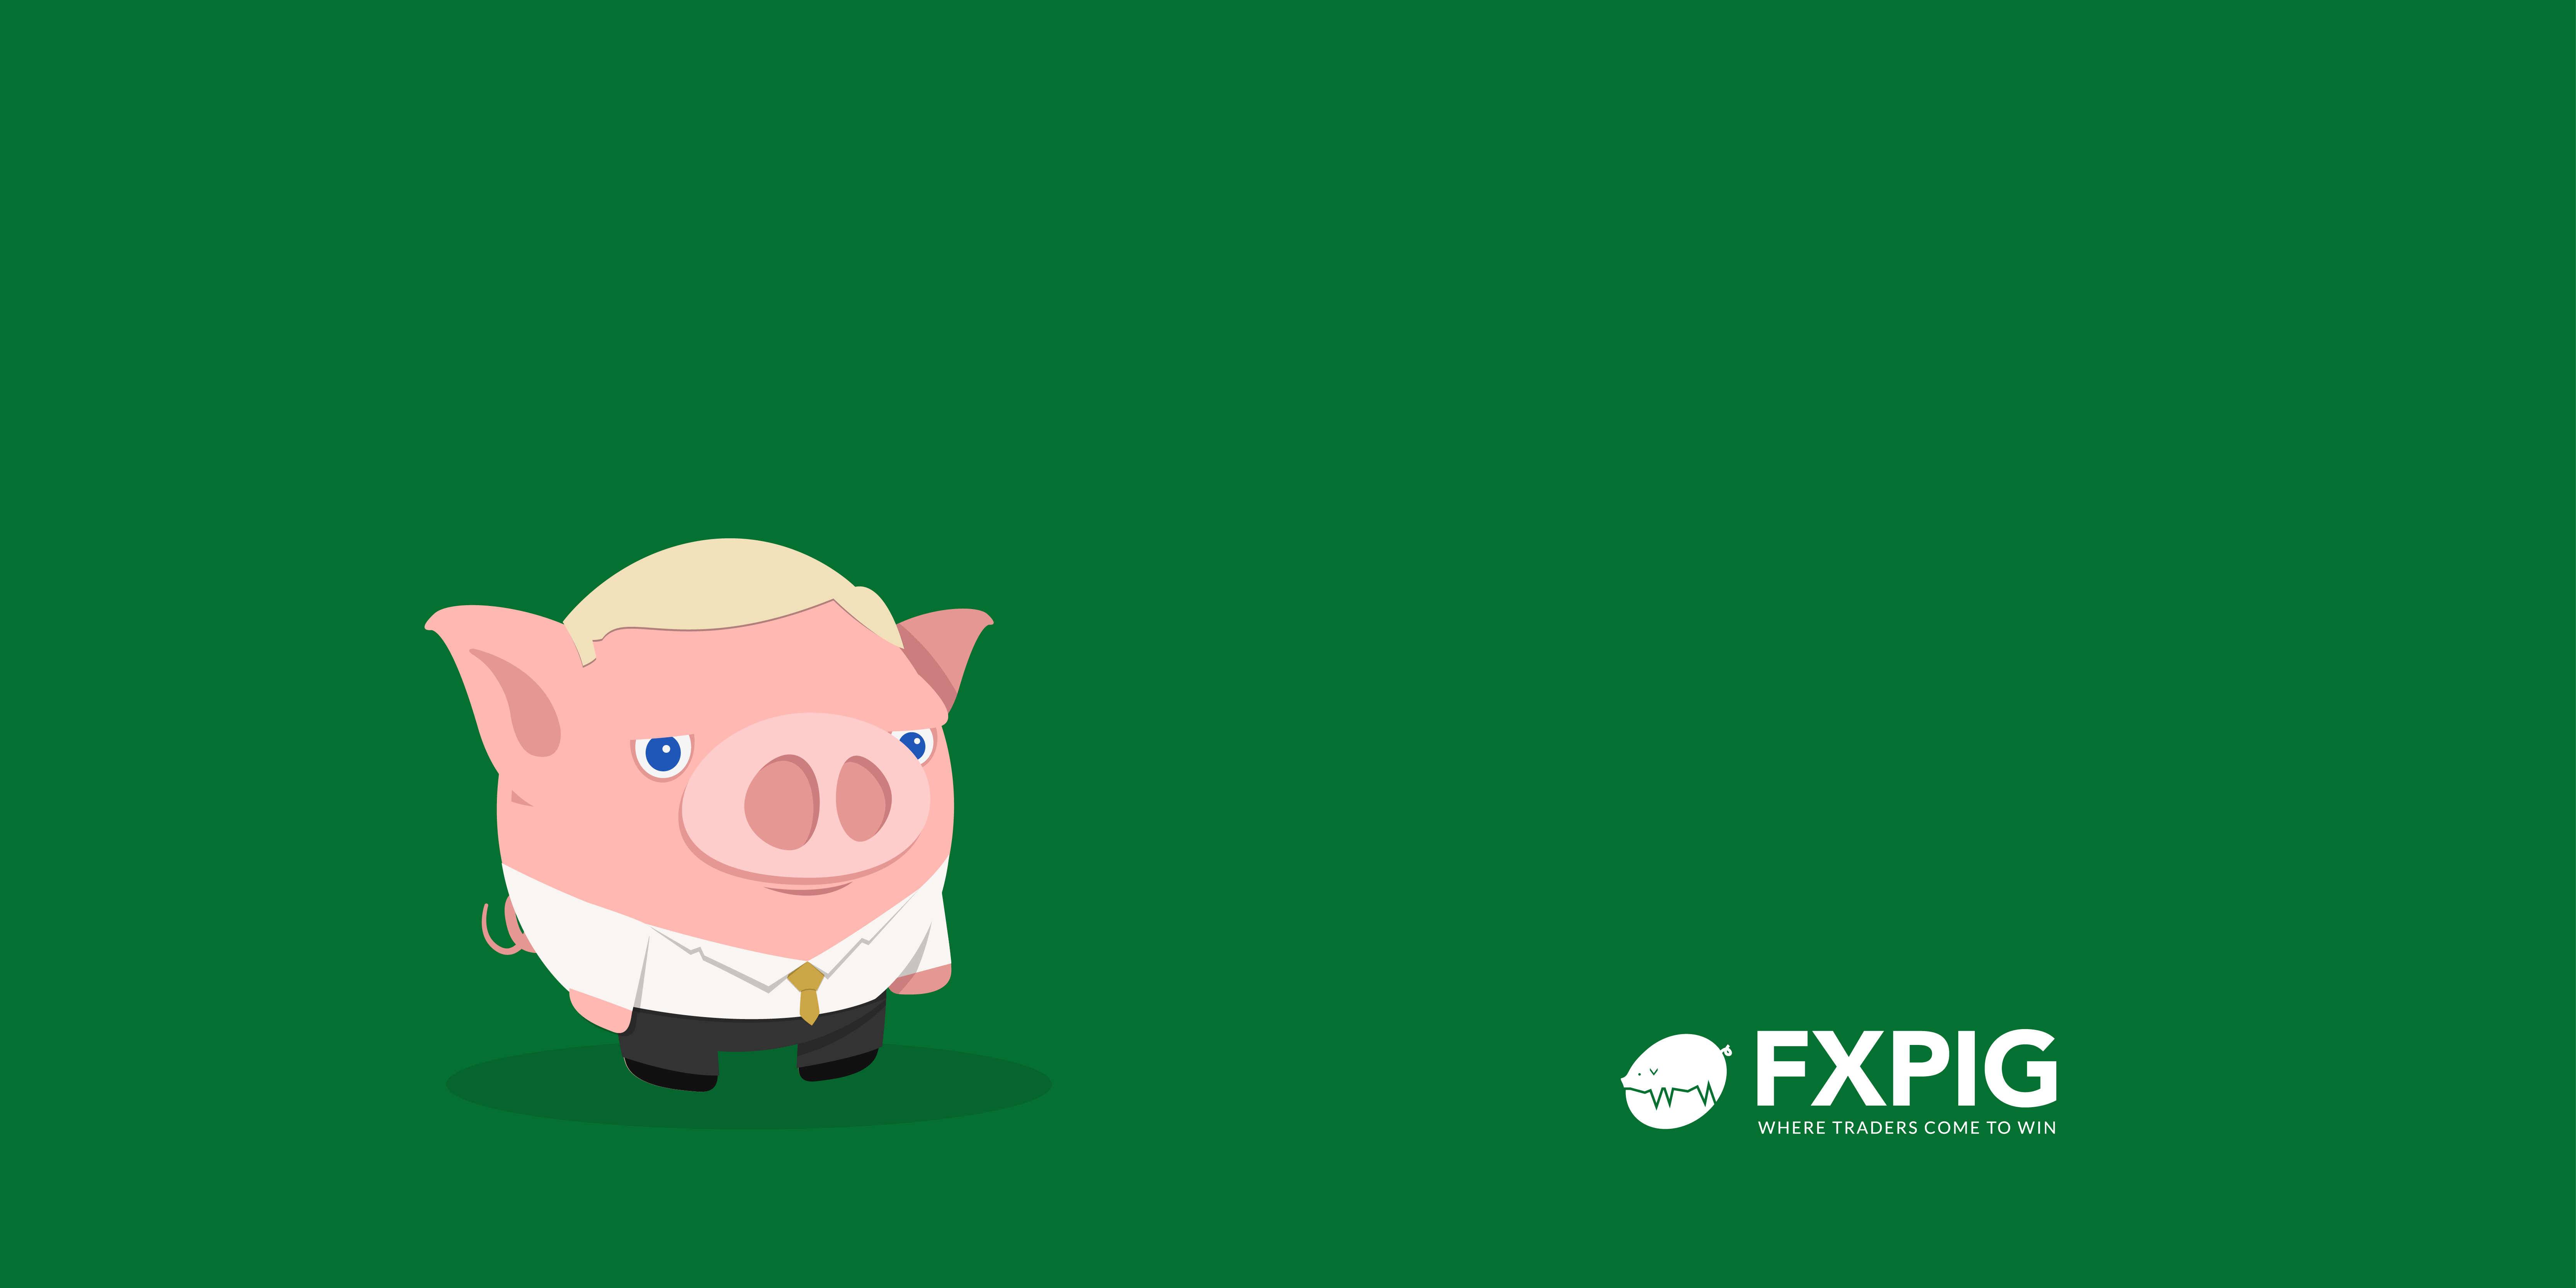 Forex_Trading-Wisdom_Fx_Trader_FXPIG_The-trend-is-your-friend